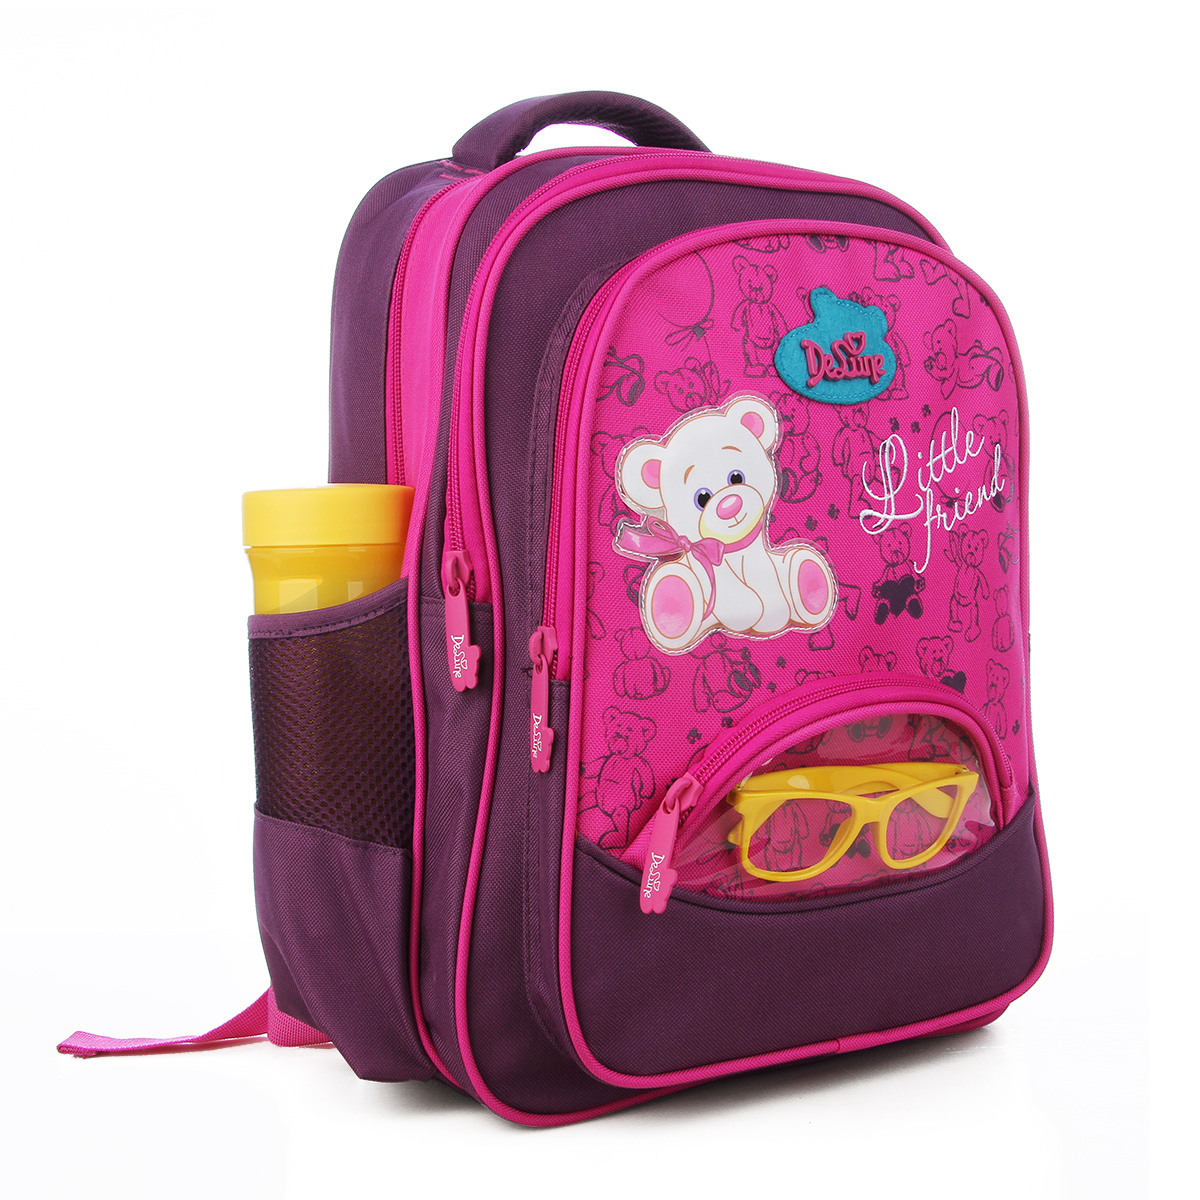 Delune Kids Backpack Schoolbags for Boys Girls New Design Cute Cartoon Bear  Schoolbags High Quality Silk Printed SchoolBags-in School Bags from Luggage  ... 63f454e749bed